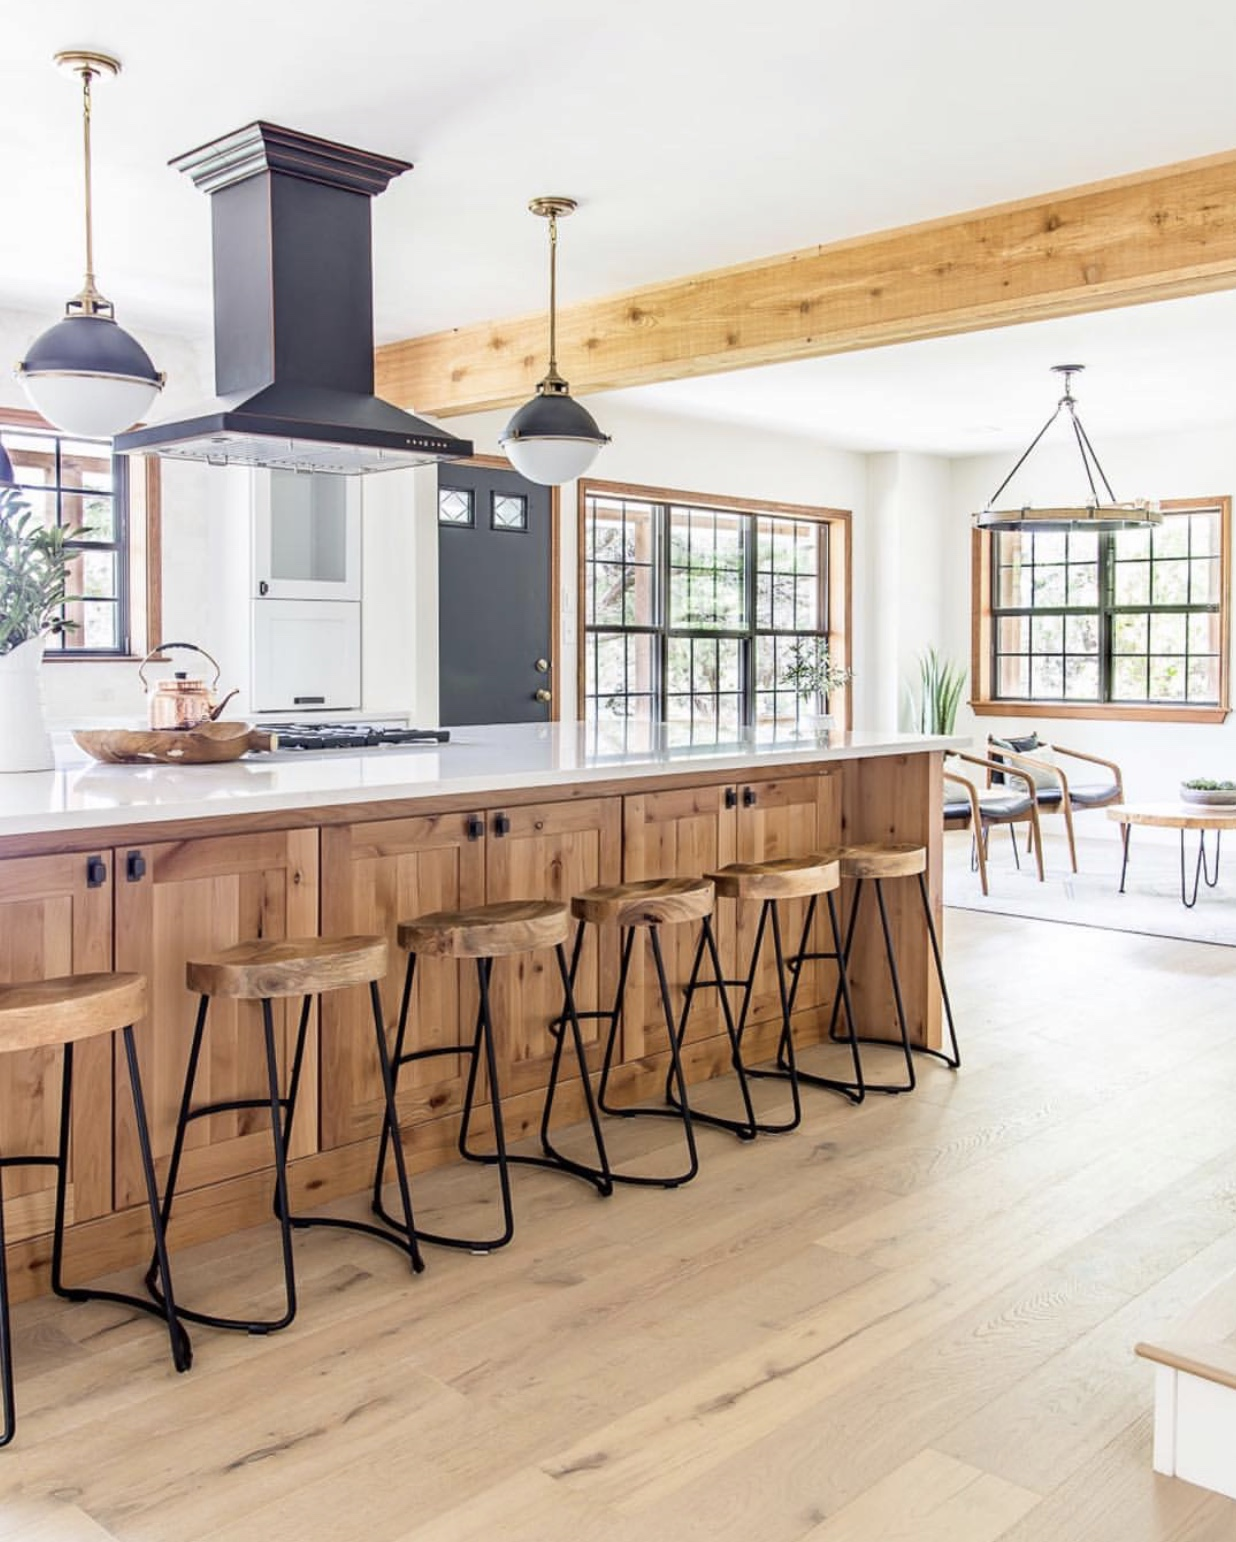 6 Tips For A Kitchen You Can Love For A Lifetime: Tips For Choosing The Best Bar Stools For Your Kitchen